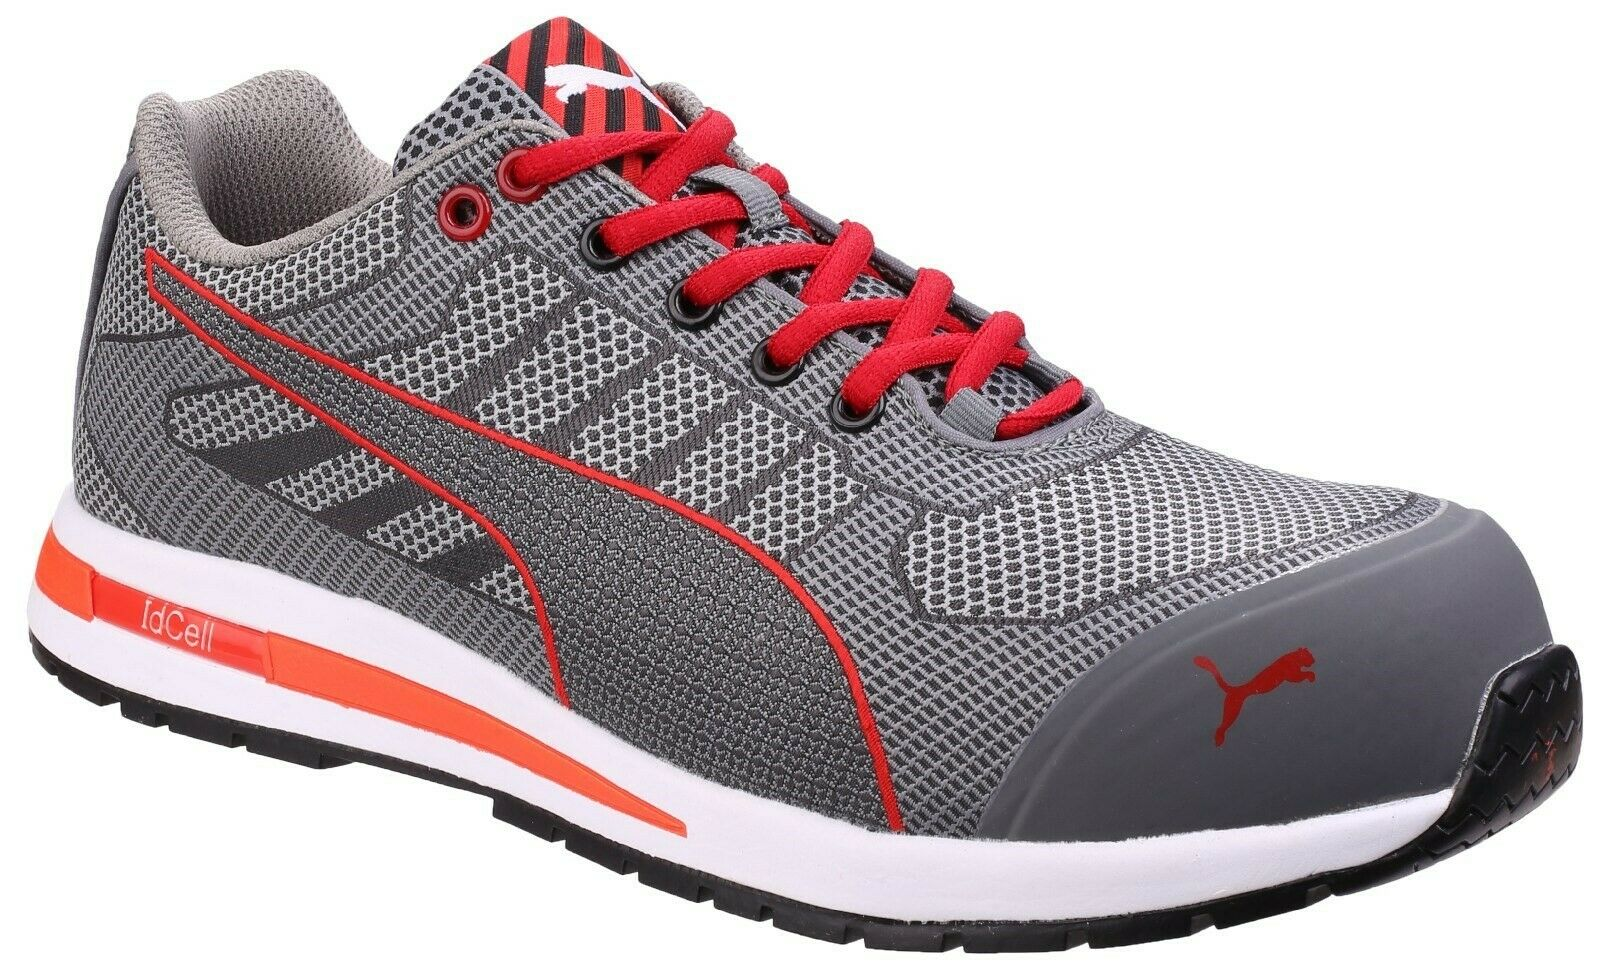 Puma Xelerate Knit Low Safety Trainers Industrial Composite Toe Mens Work Shoes